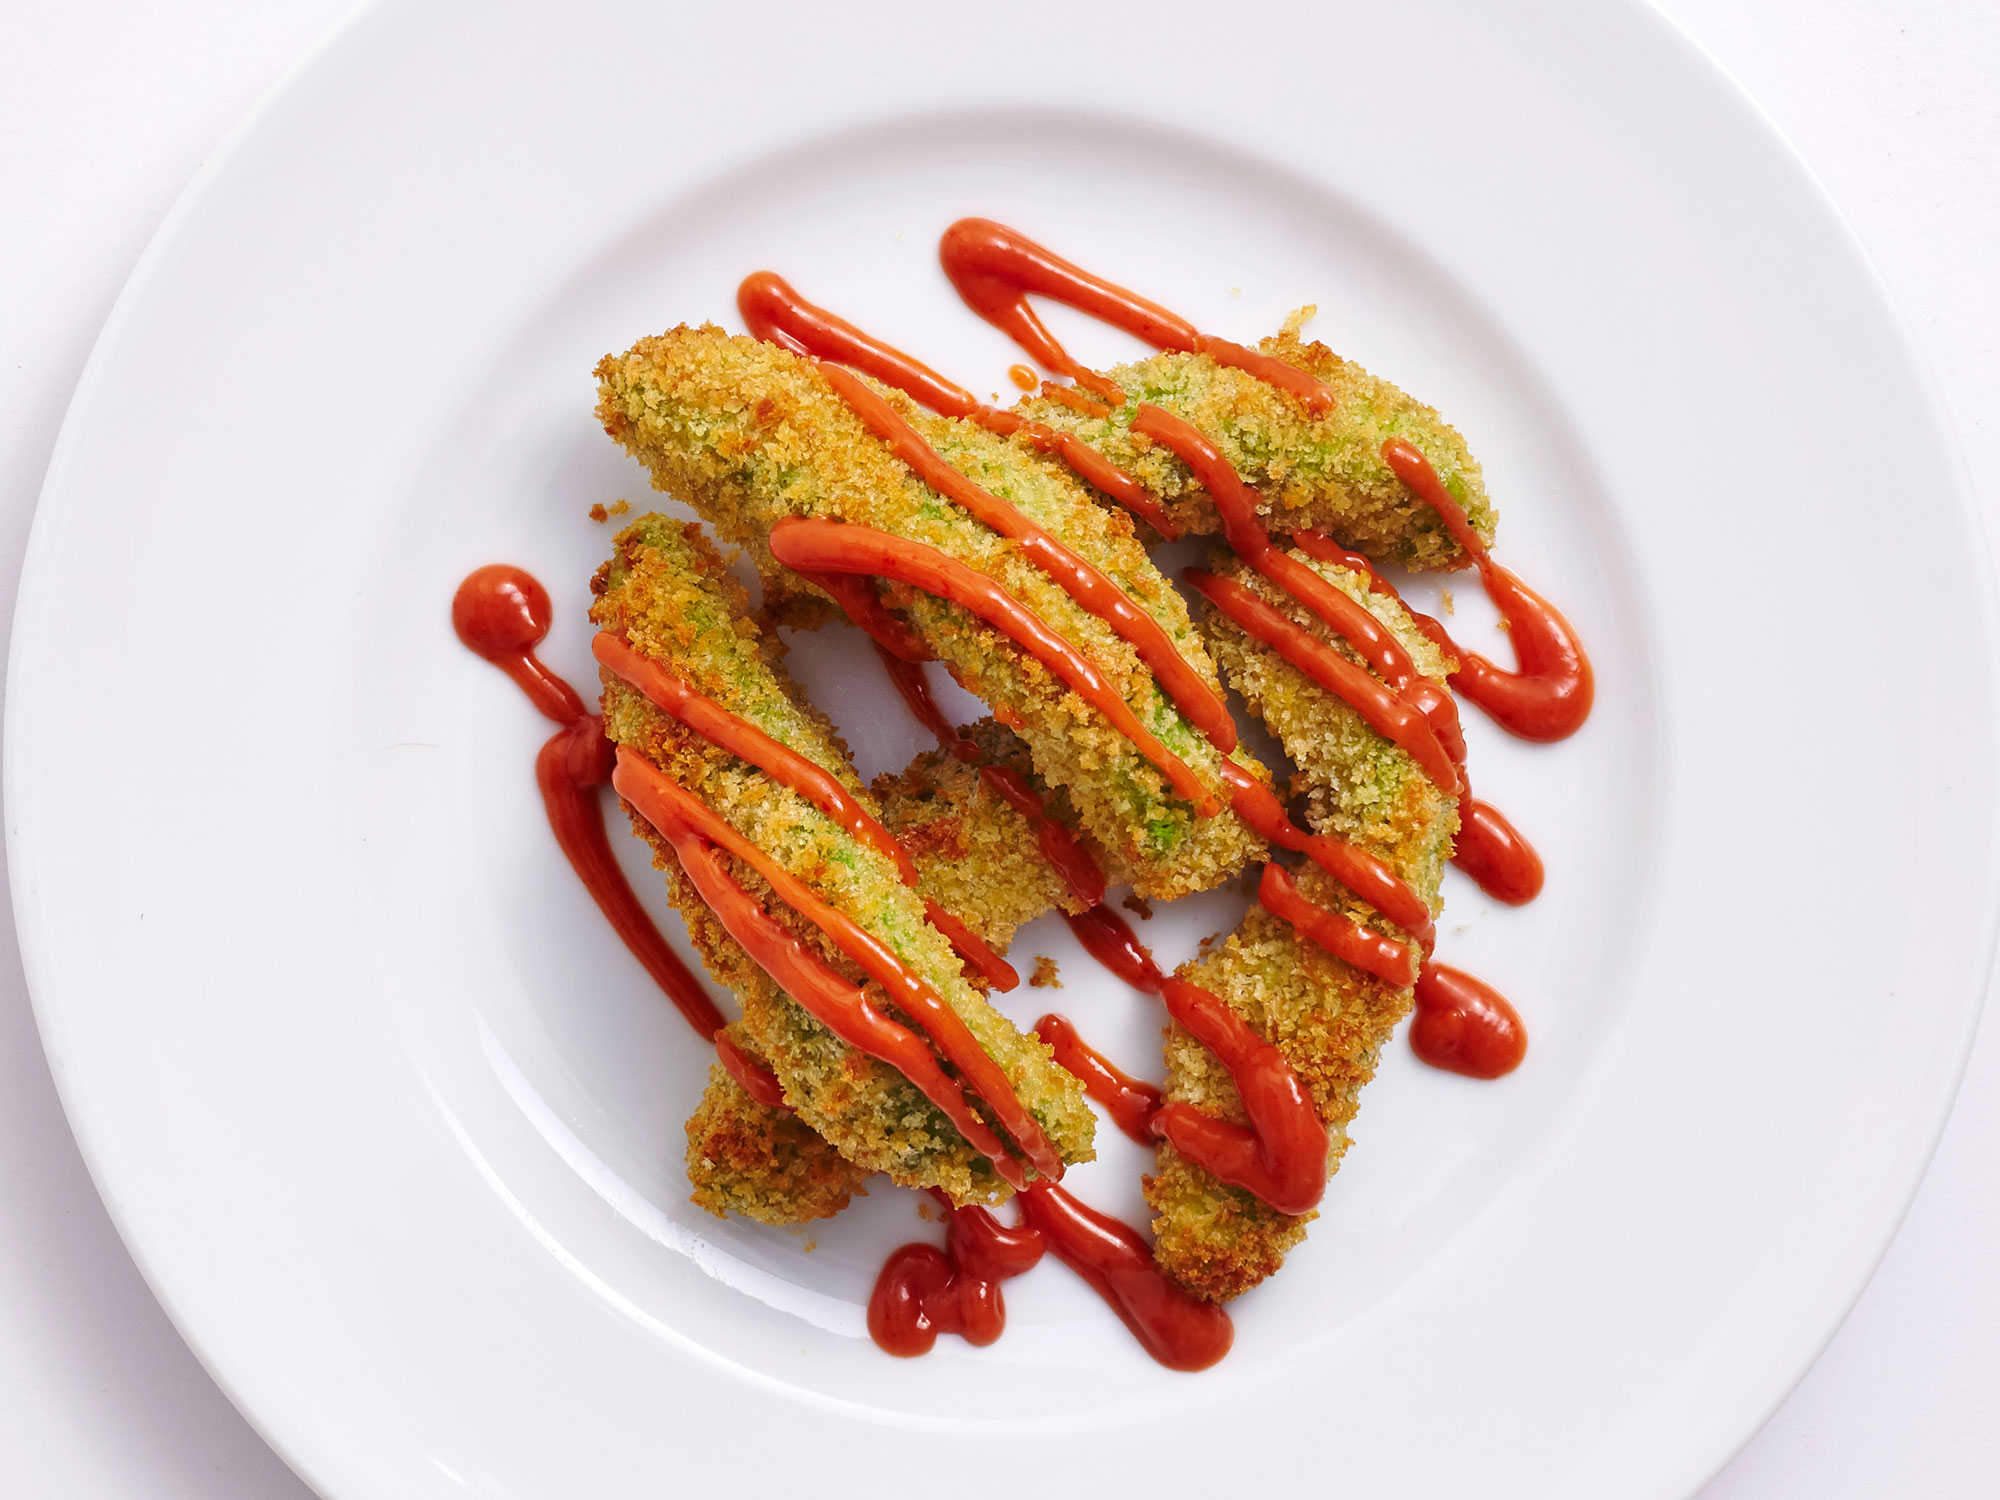 How to Make Avocado Fries in an Air Fryer